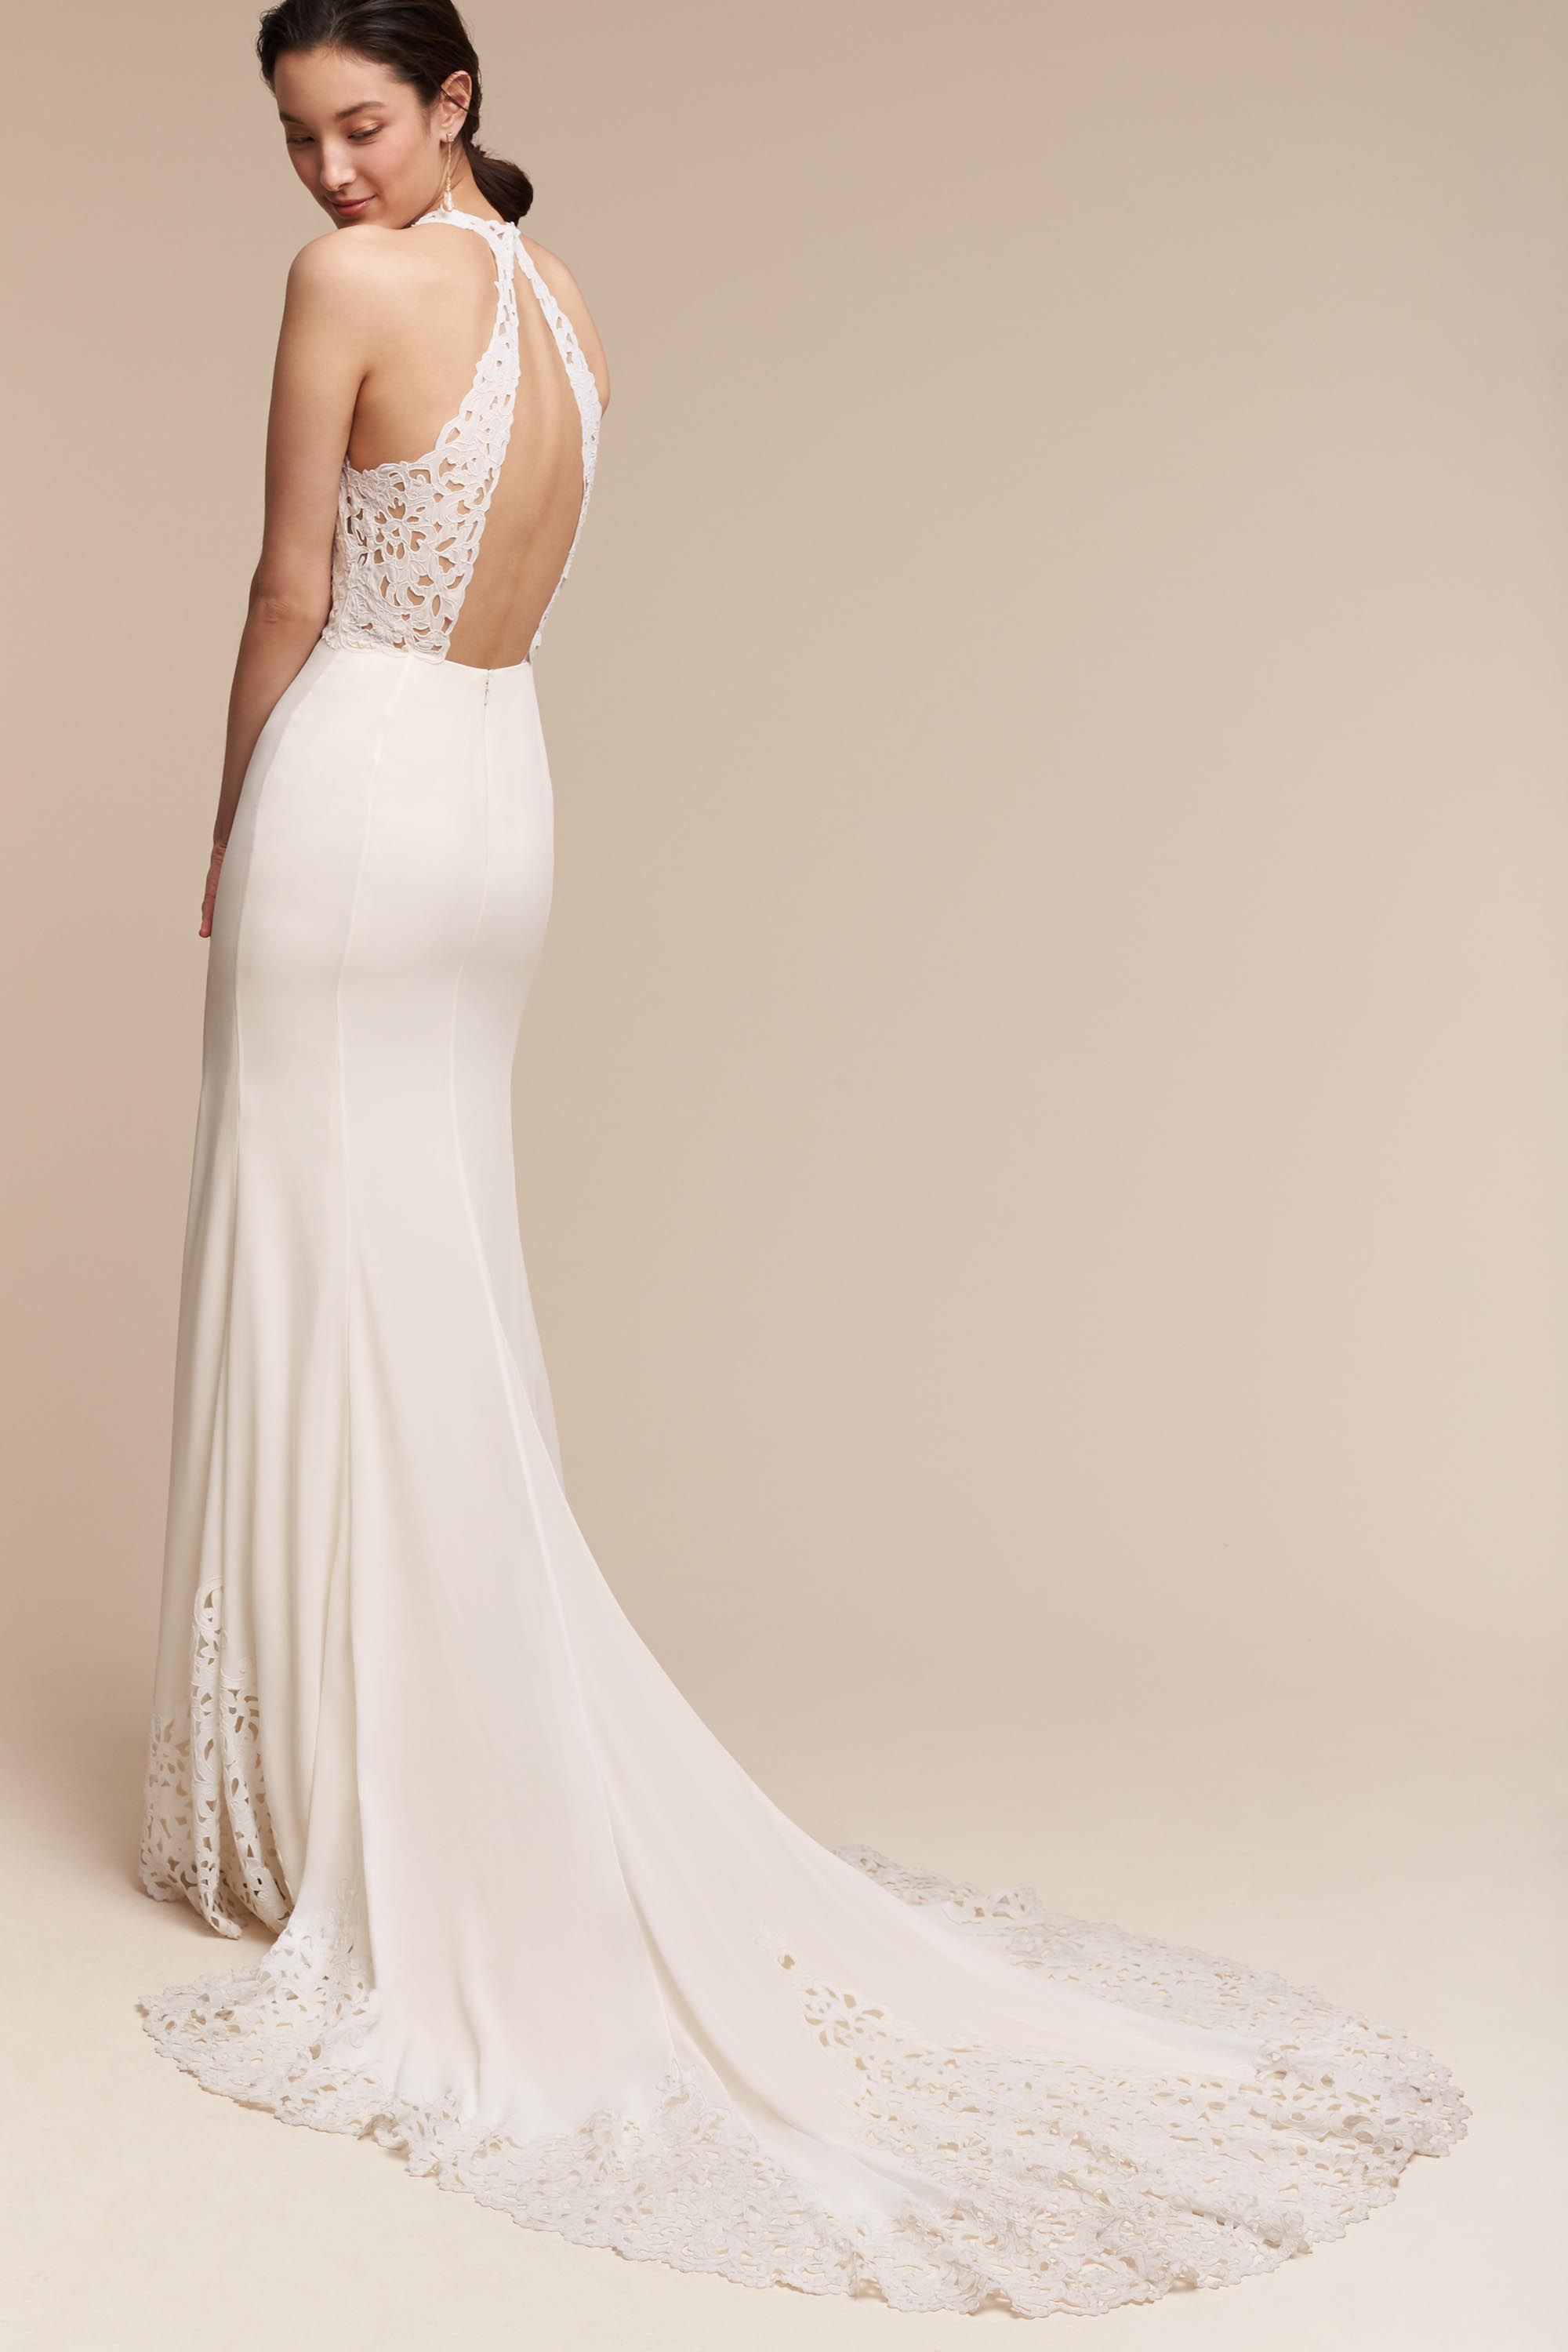 Cruz Gown | Where to Buy BHLDN Wedding Dresses